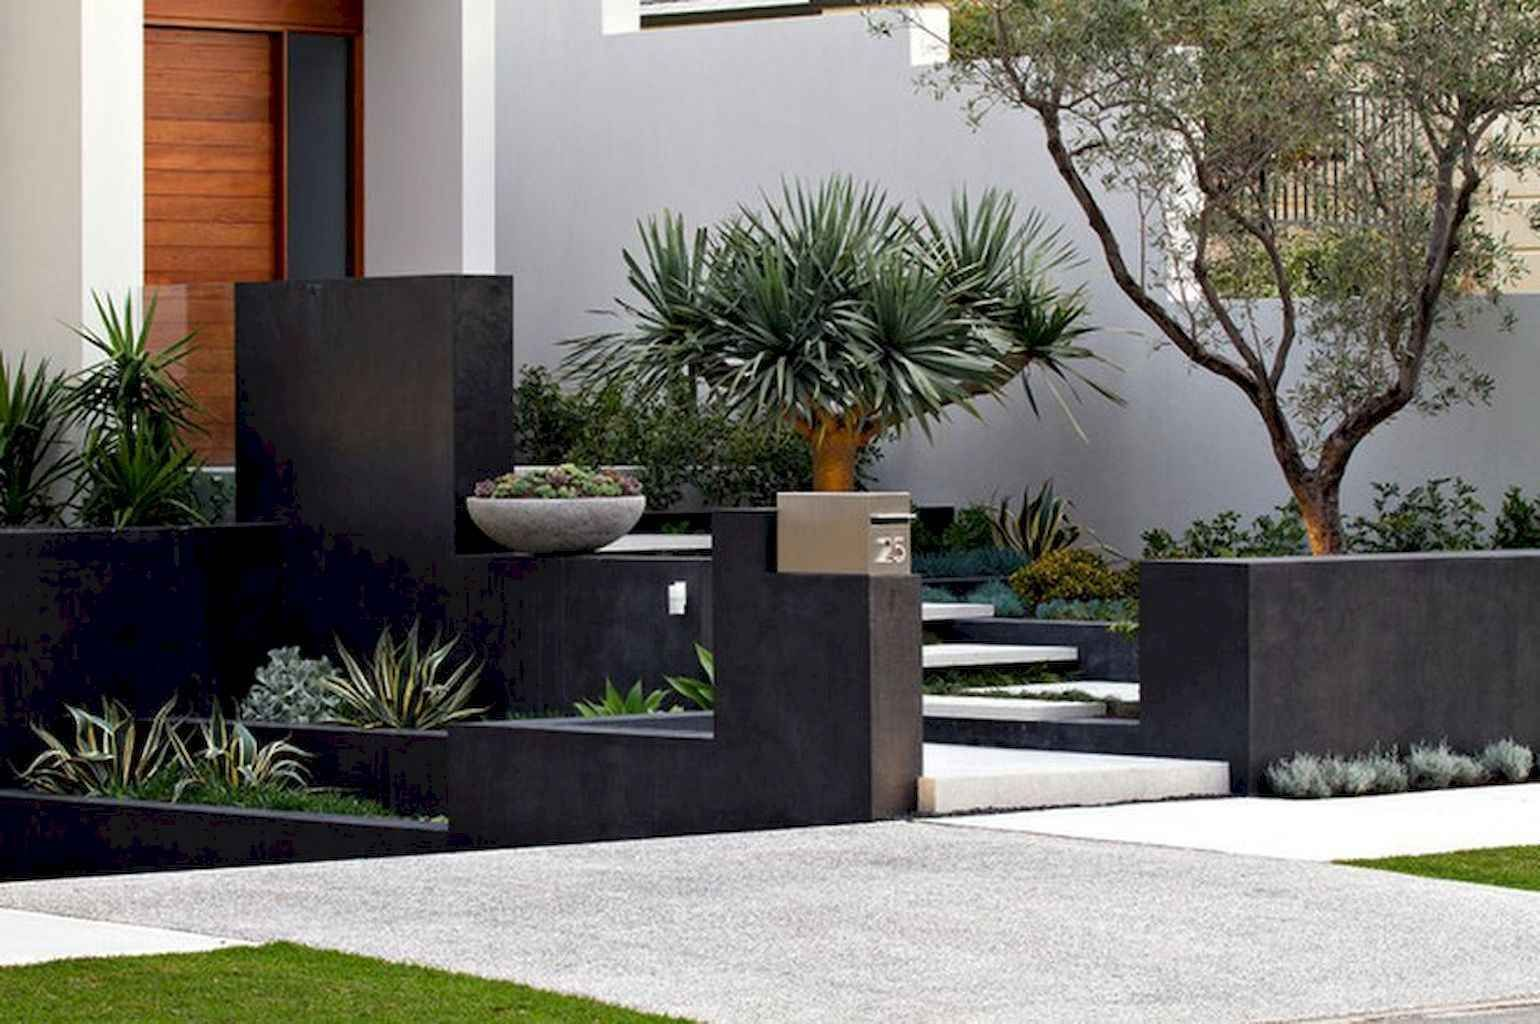 awesome modern front yard design and landscaping ideas 07 on modern front yard landscaping ideas id=69061